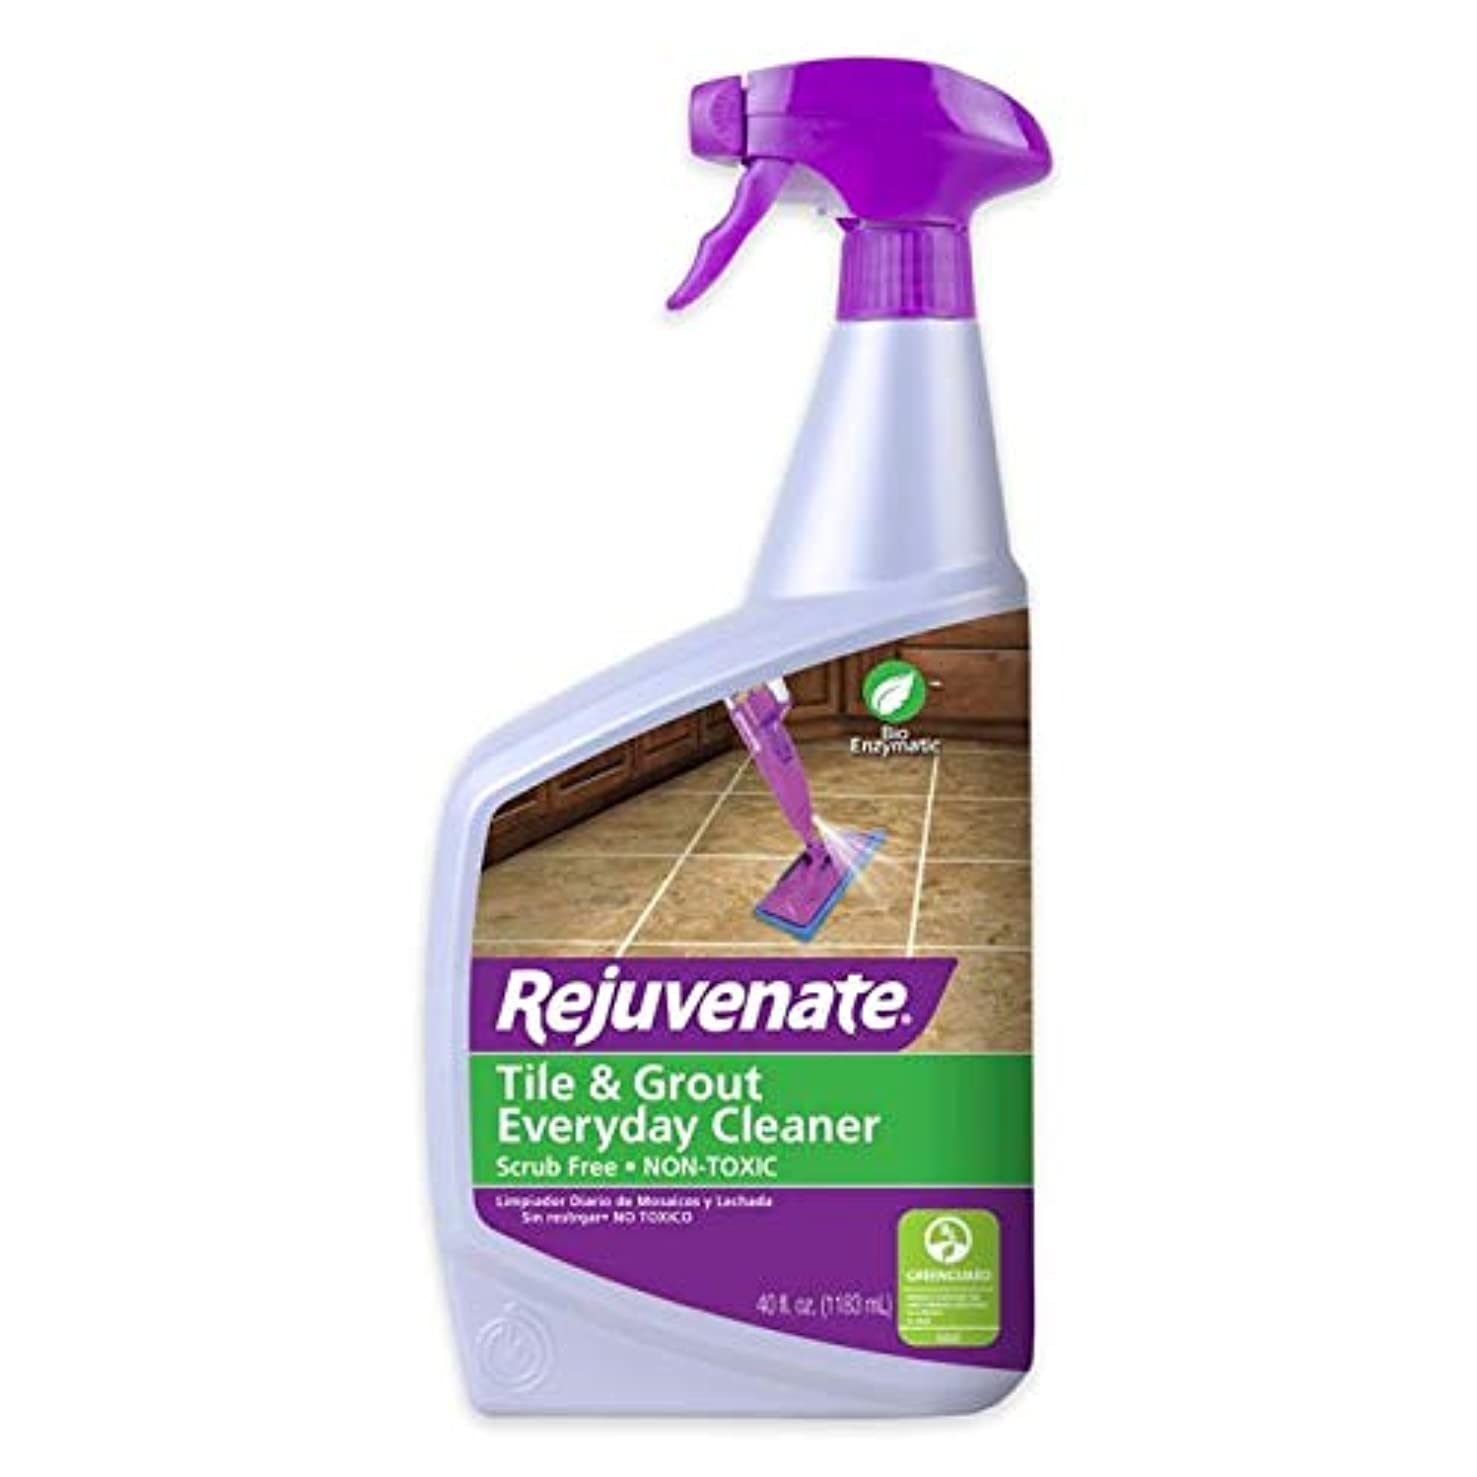 Rejuvenate Everyday Tile & Grout Cleaner, Perfect for Cleaning Ceramic Tile Floors and Shower Grout